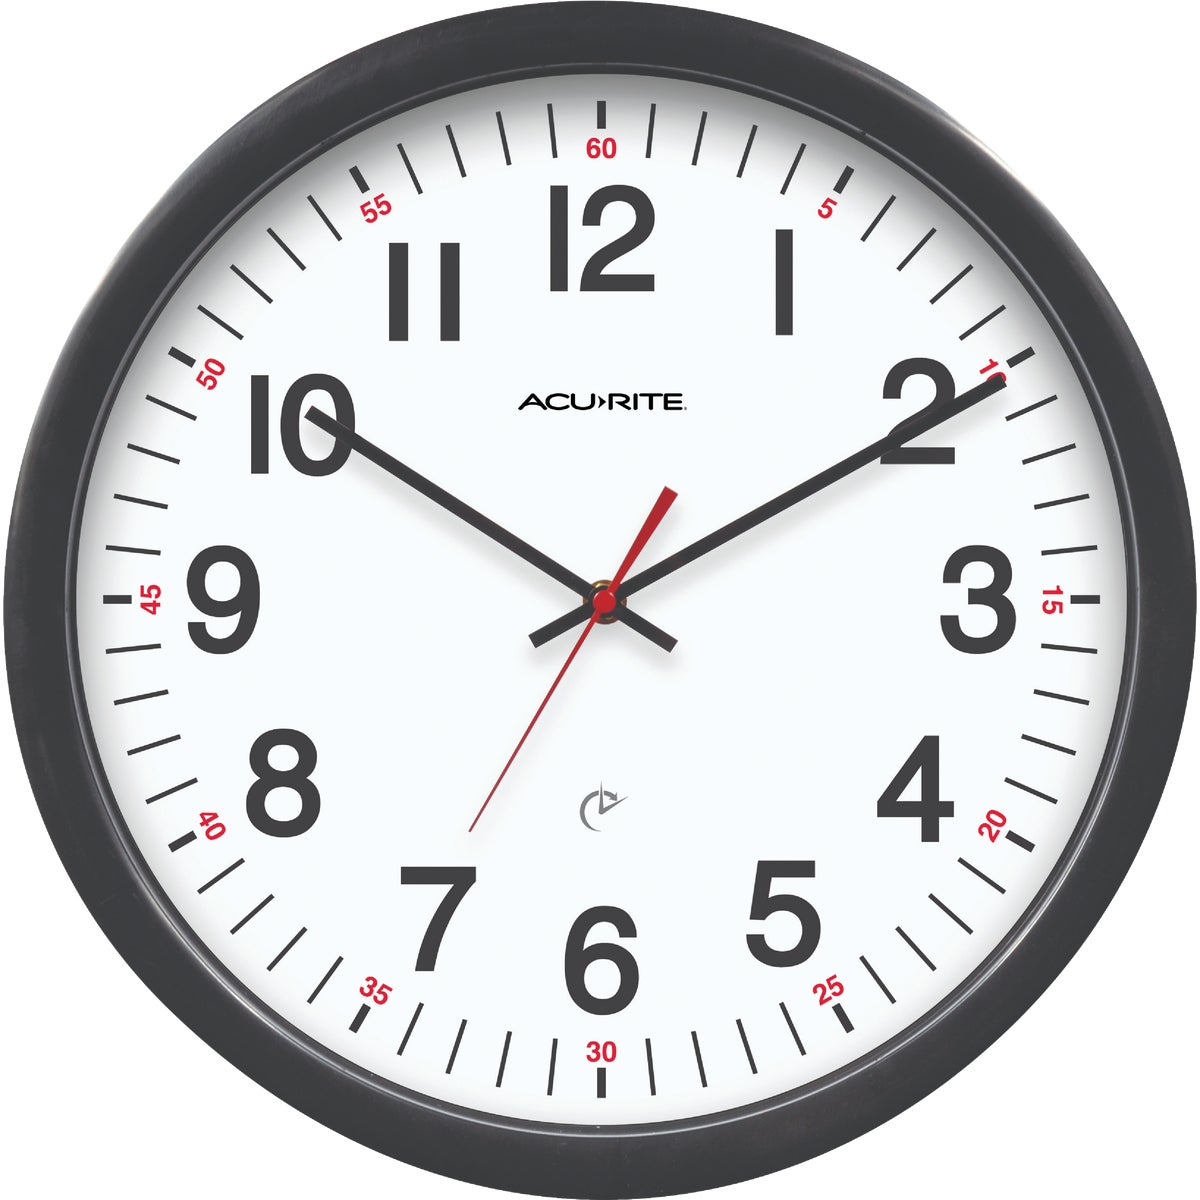 COMMERCIAL CLOCK - 46007T by Chaney Instrument Co